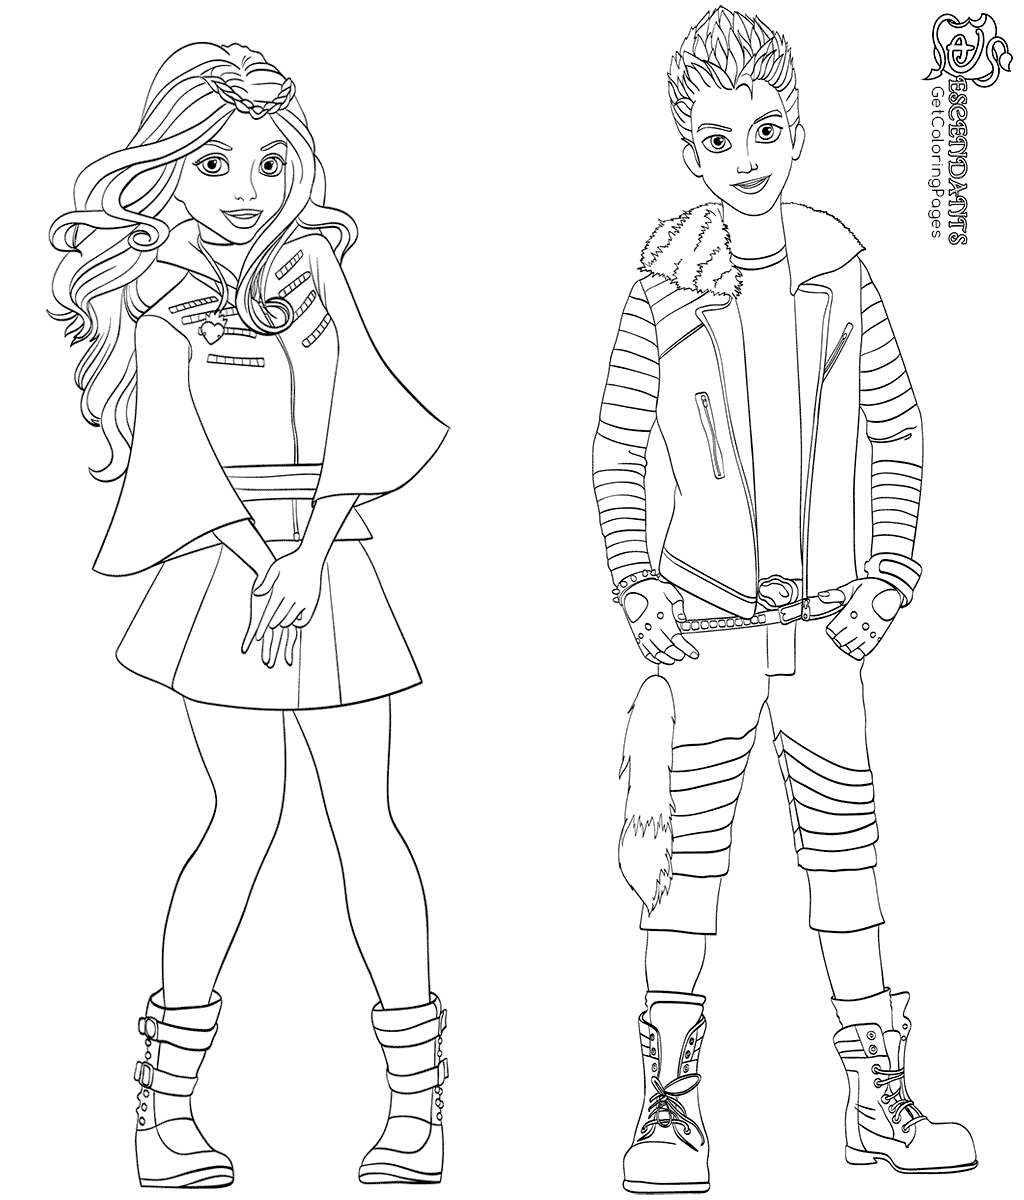 image about Descendants 2 Coloring Pages Printable identify Descendants Printable Coloring Web pages at